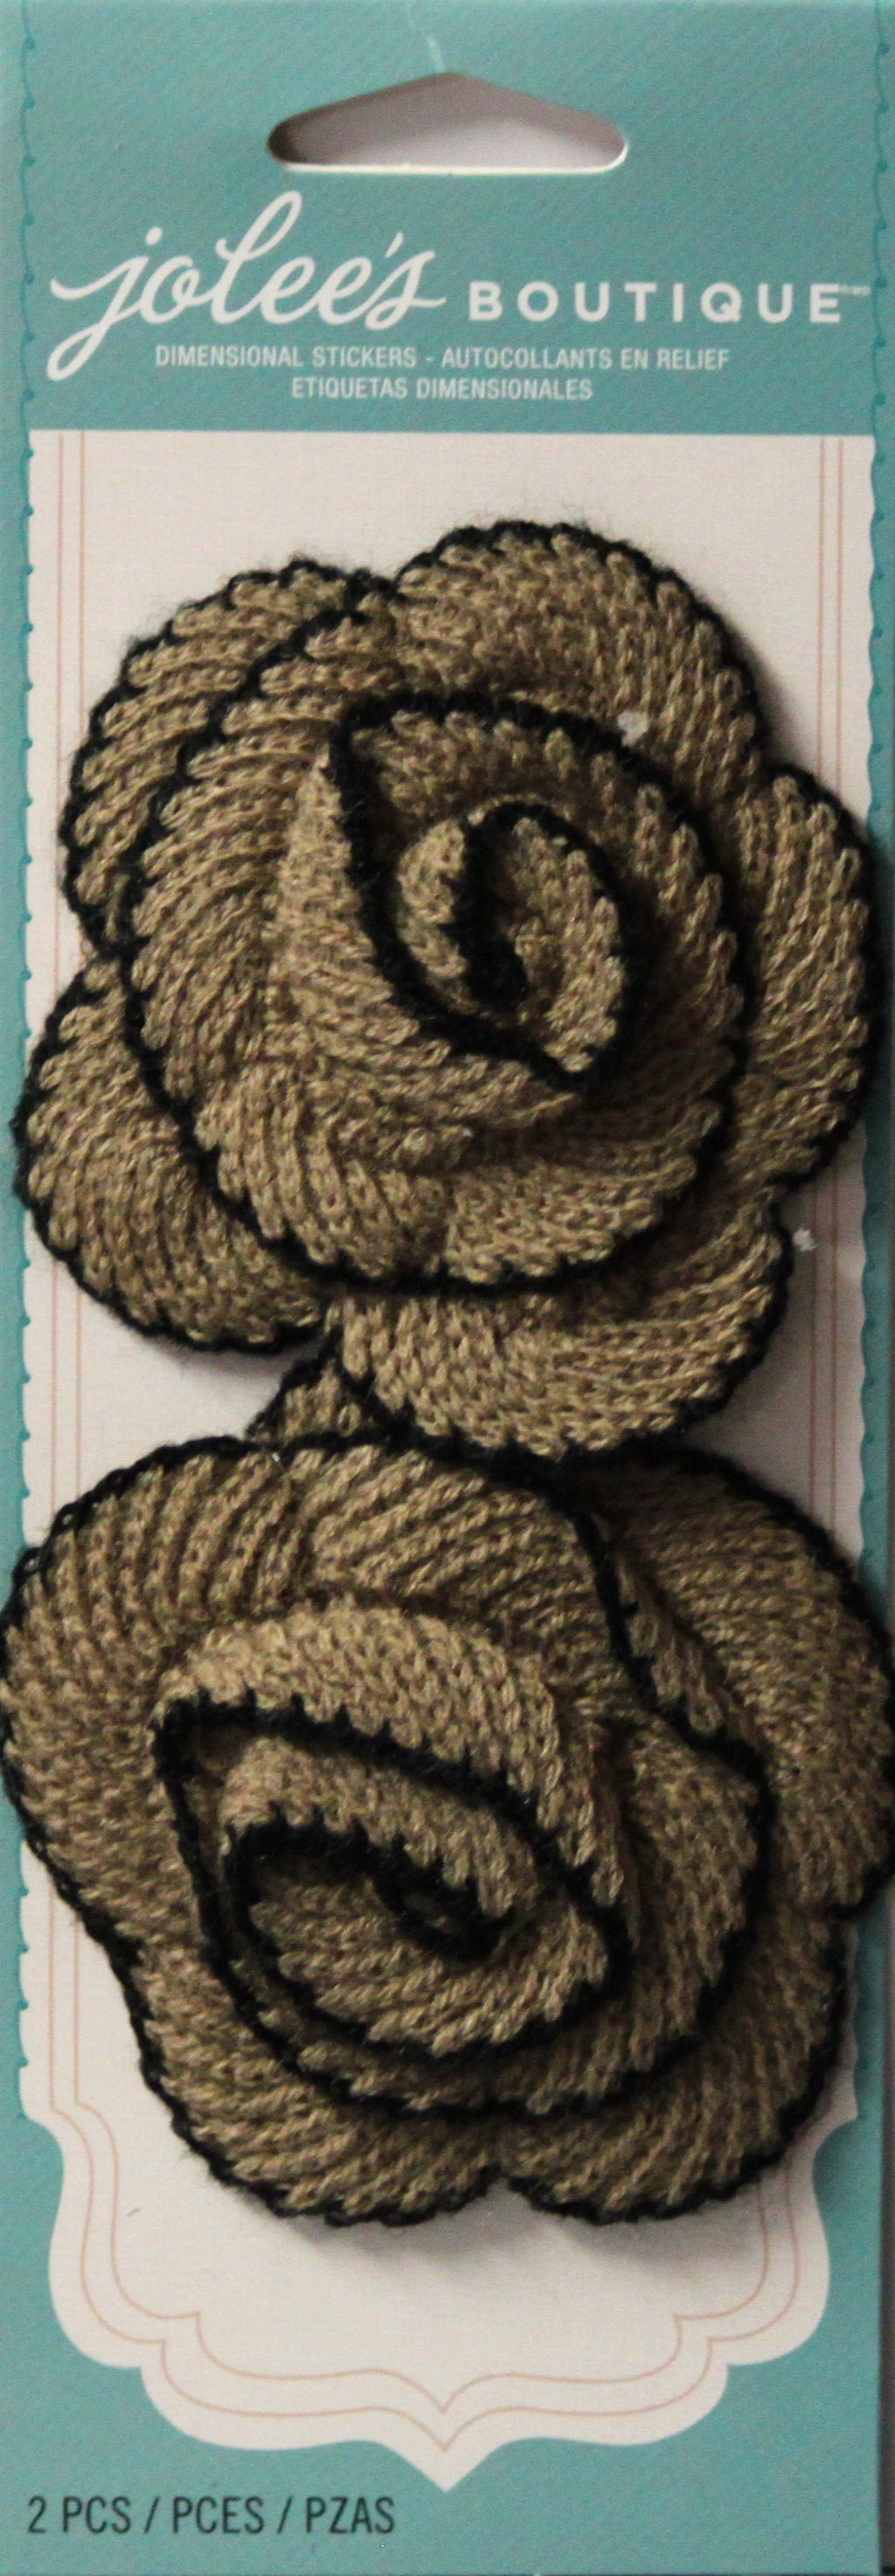 Jolee's Boutique Black Tan Knit Spiral Flowers Stickers